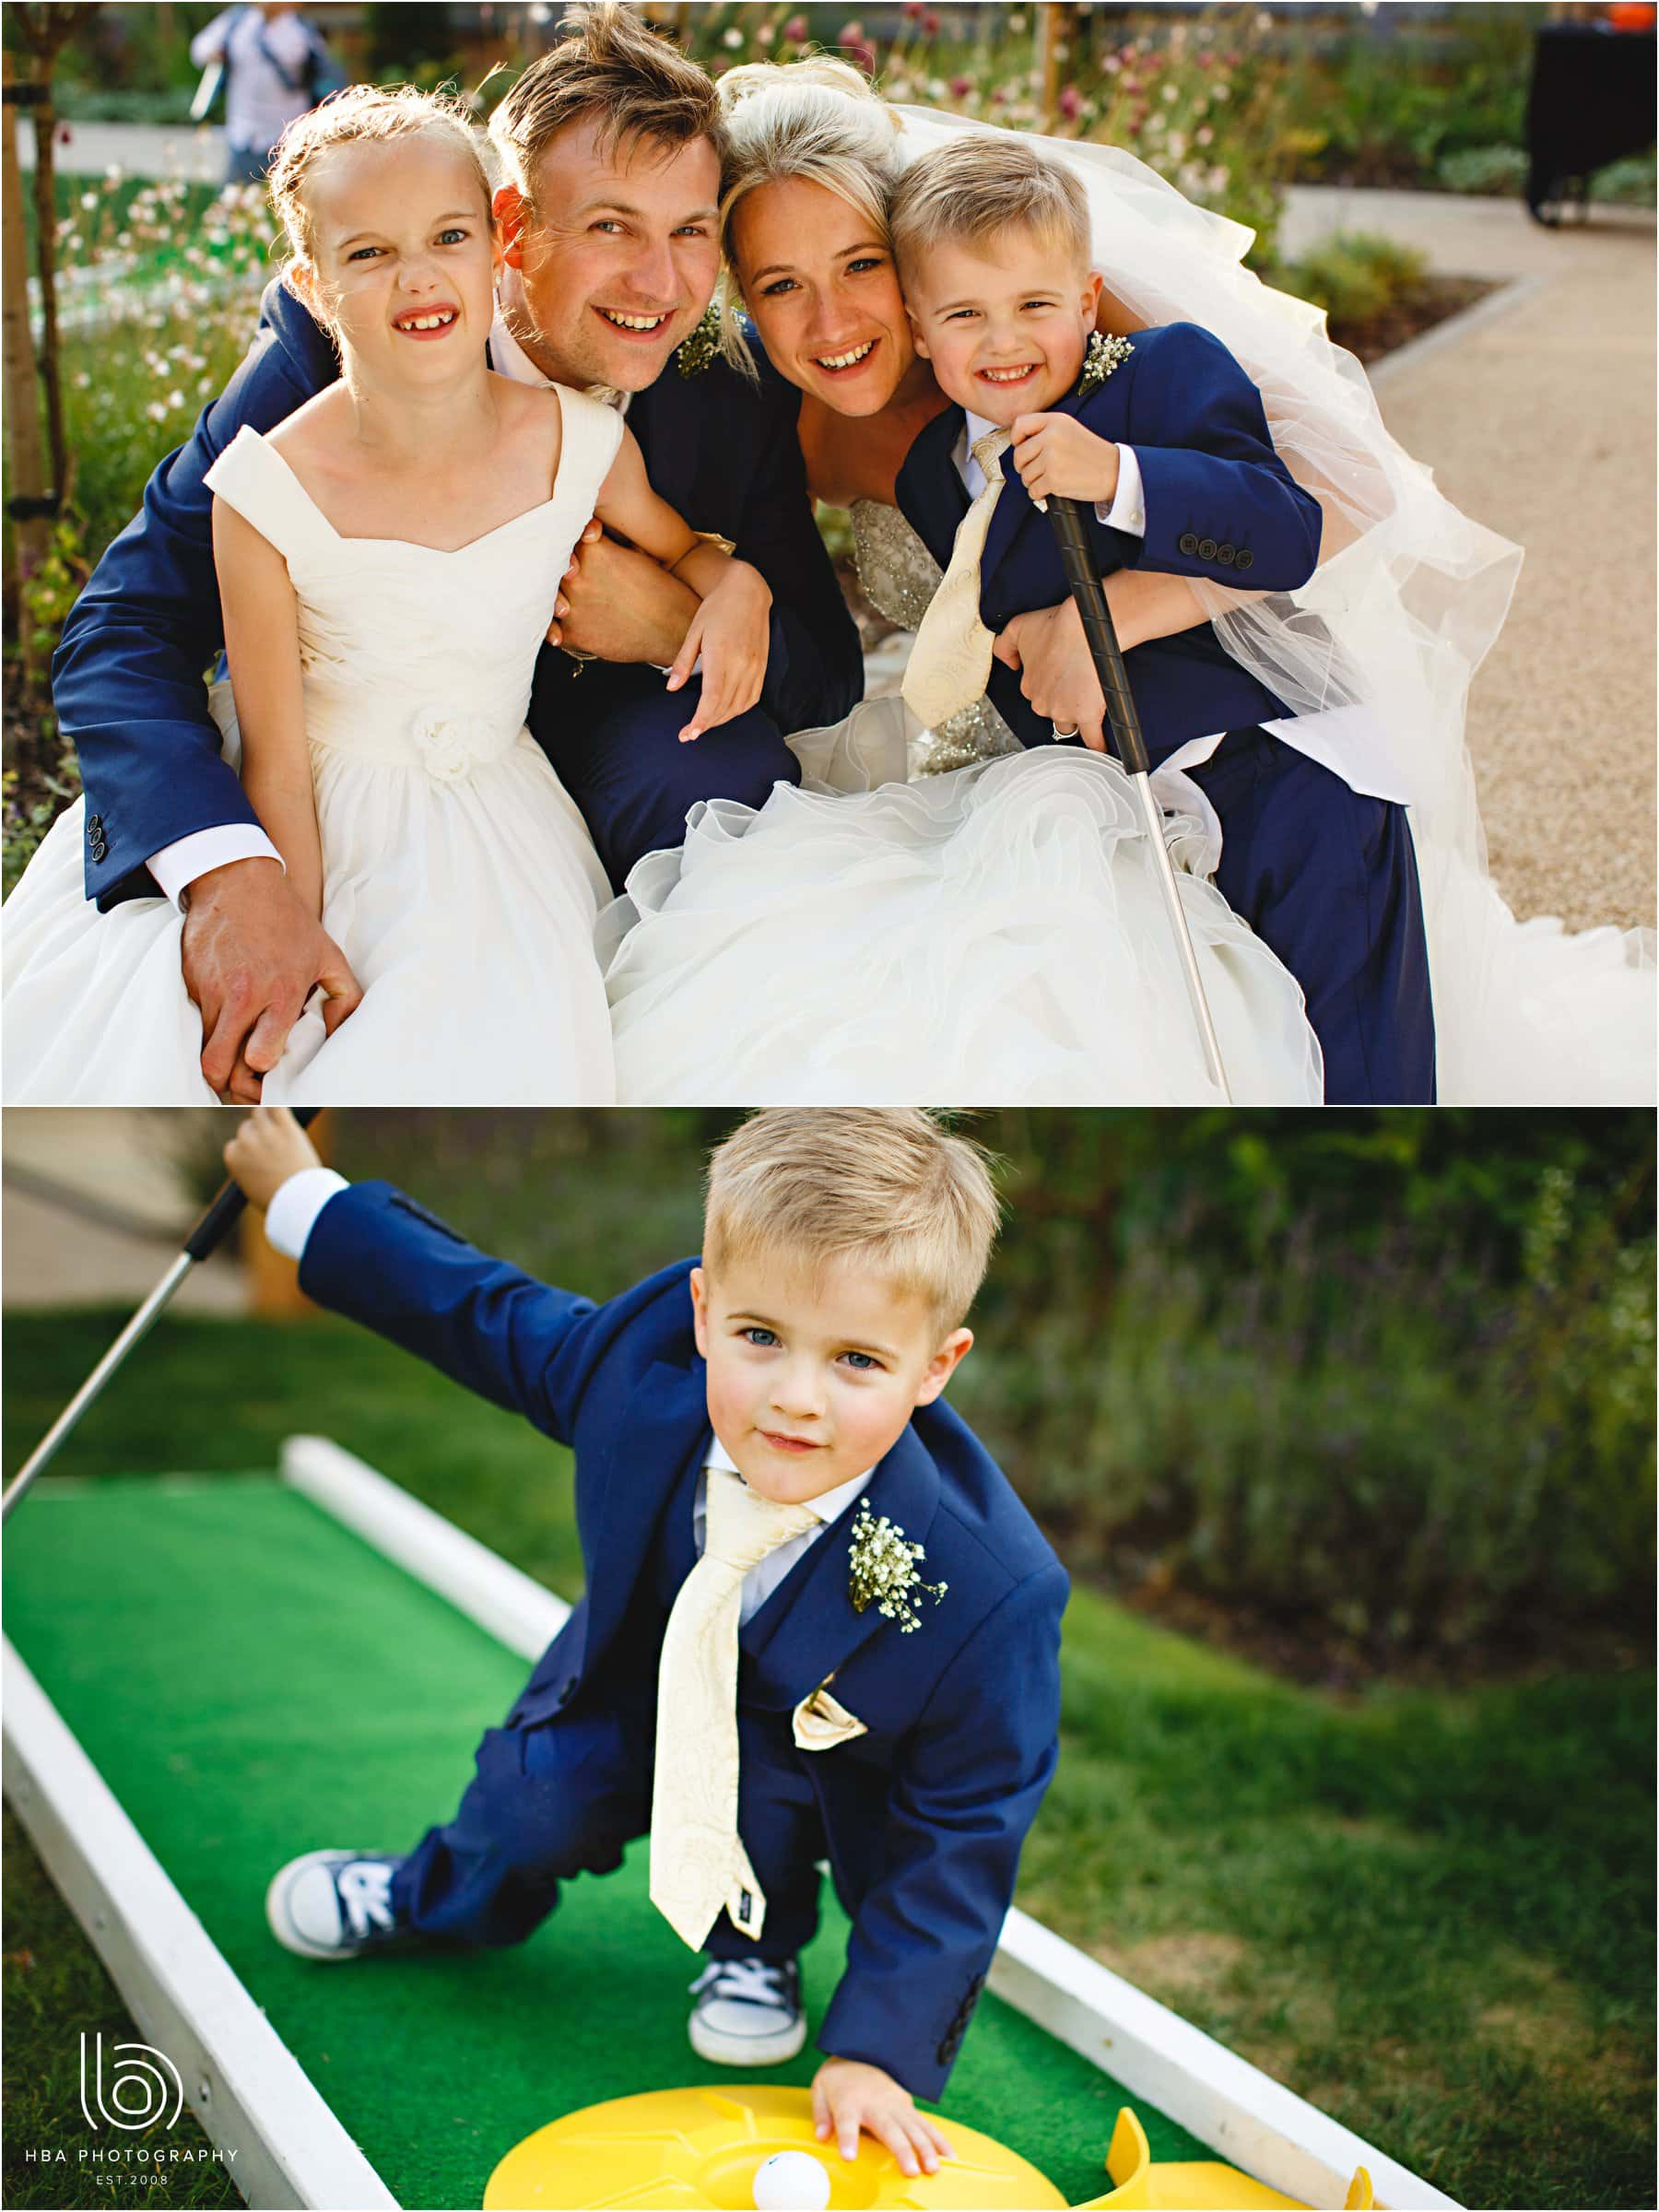 the bride & Groom with their children